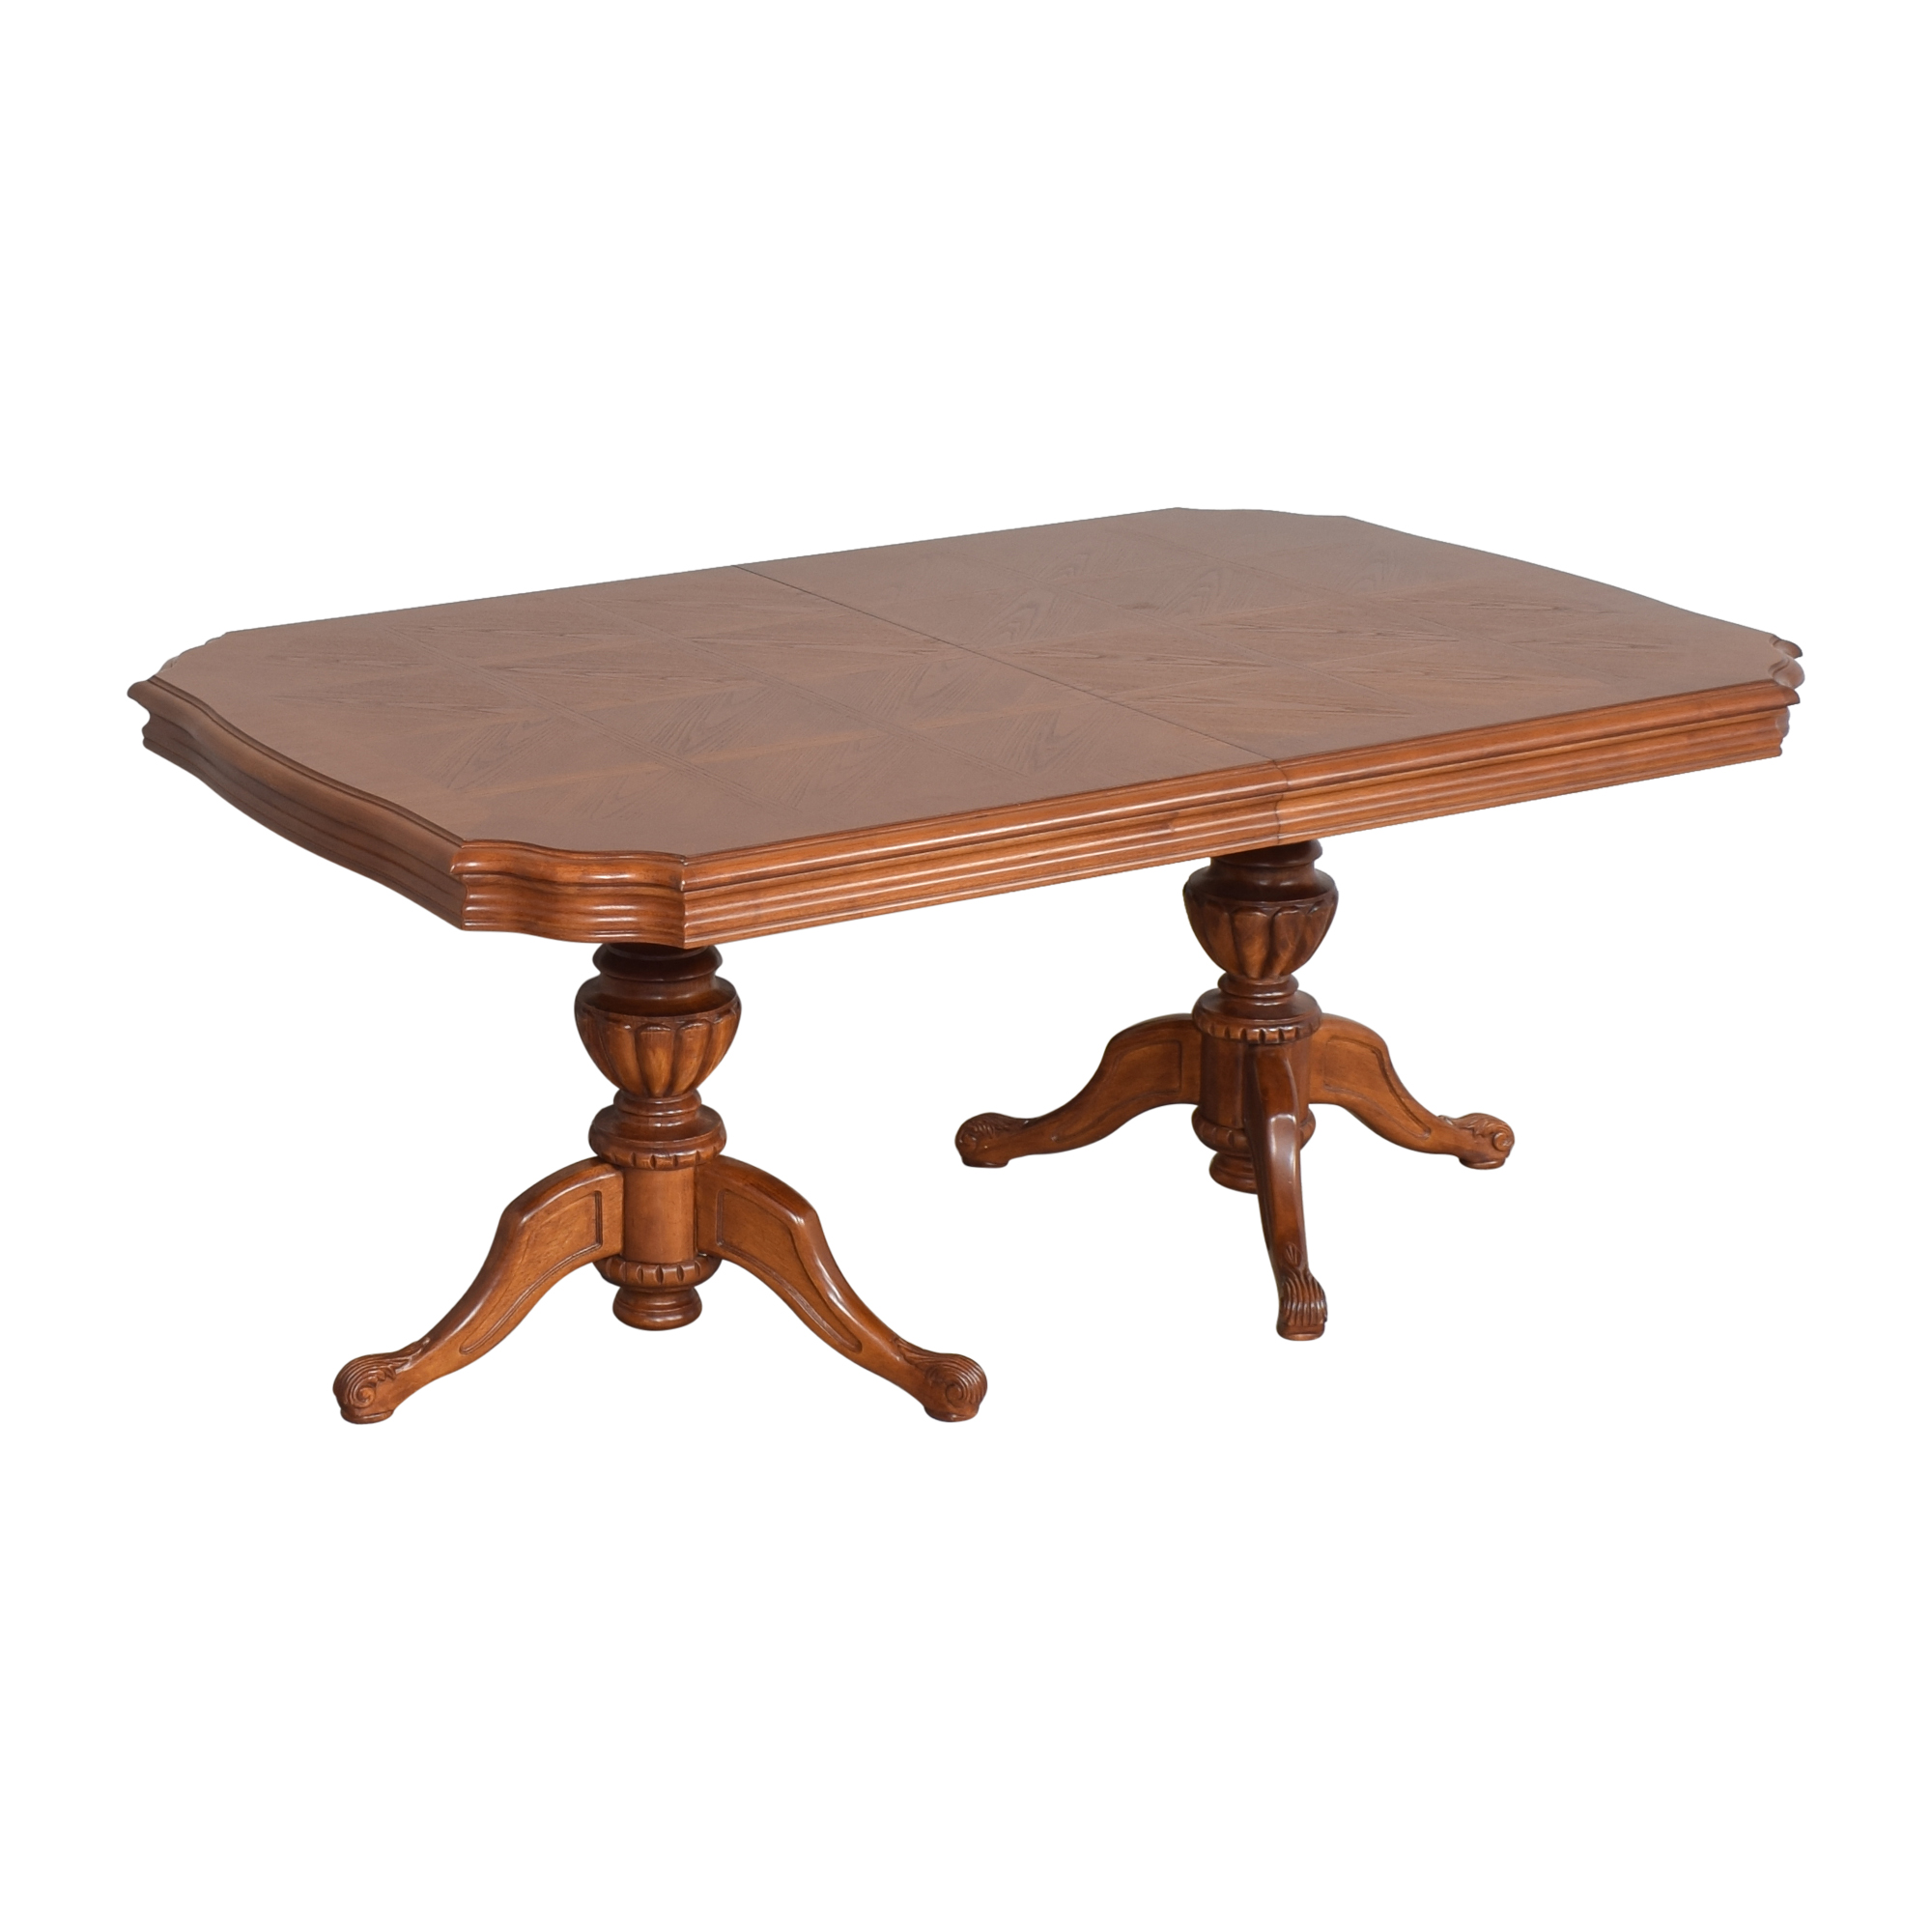 North Carolina Furniture Extendable Dining Table / Tables